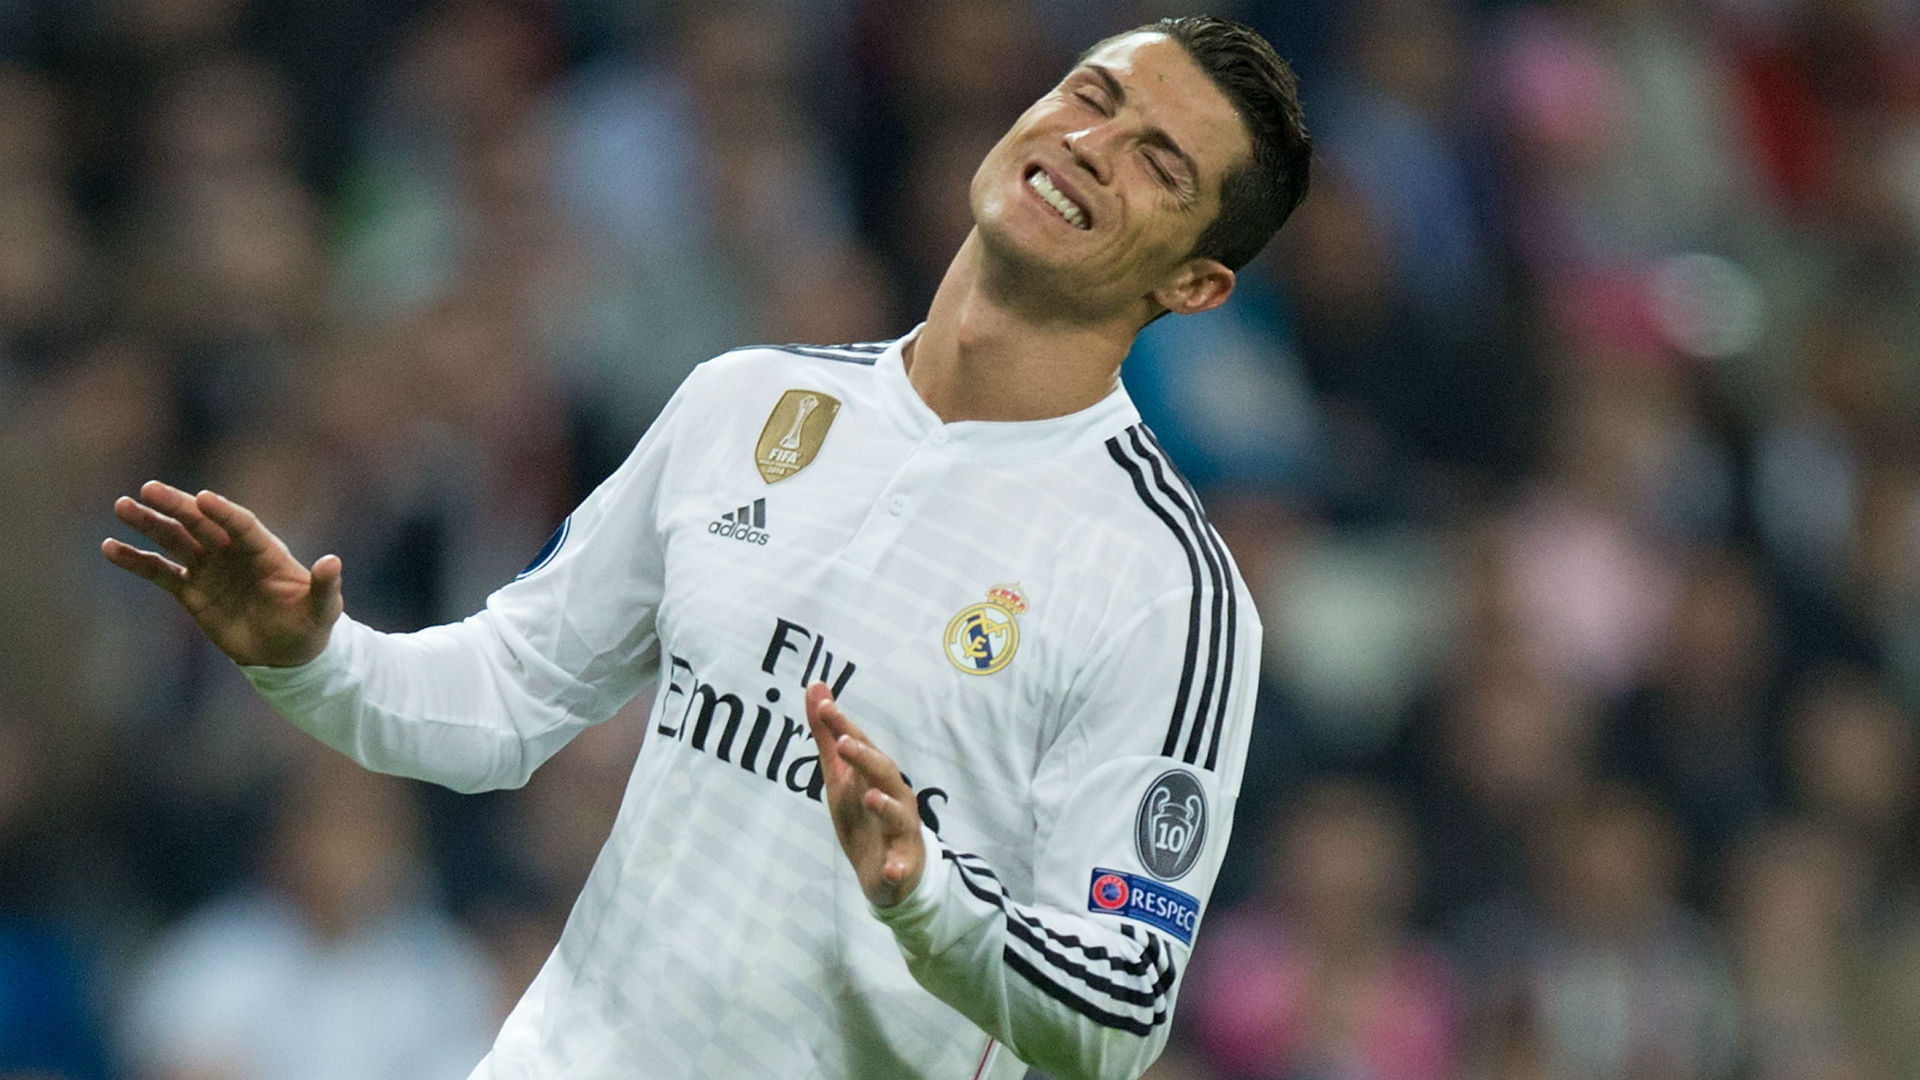 Real Madrid Star, Ronaldo Reveals Number Of Children He Wants To Have